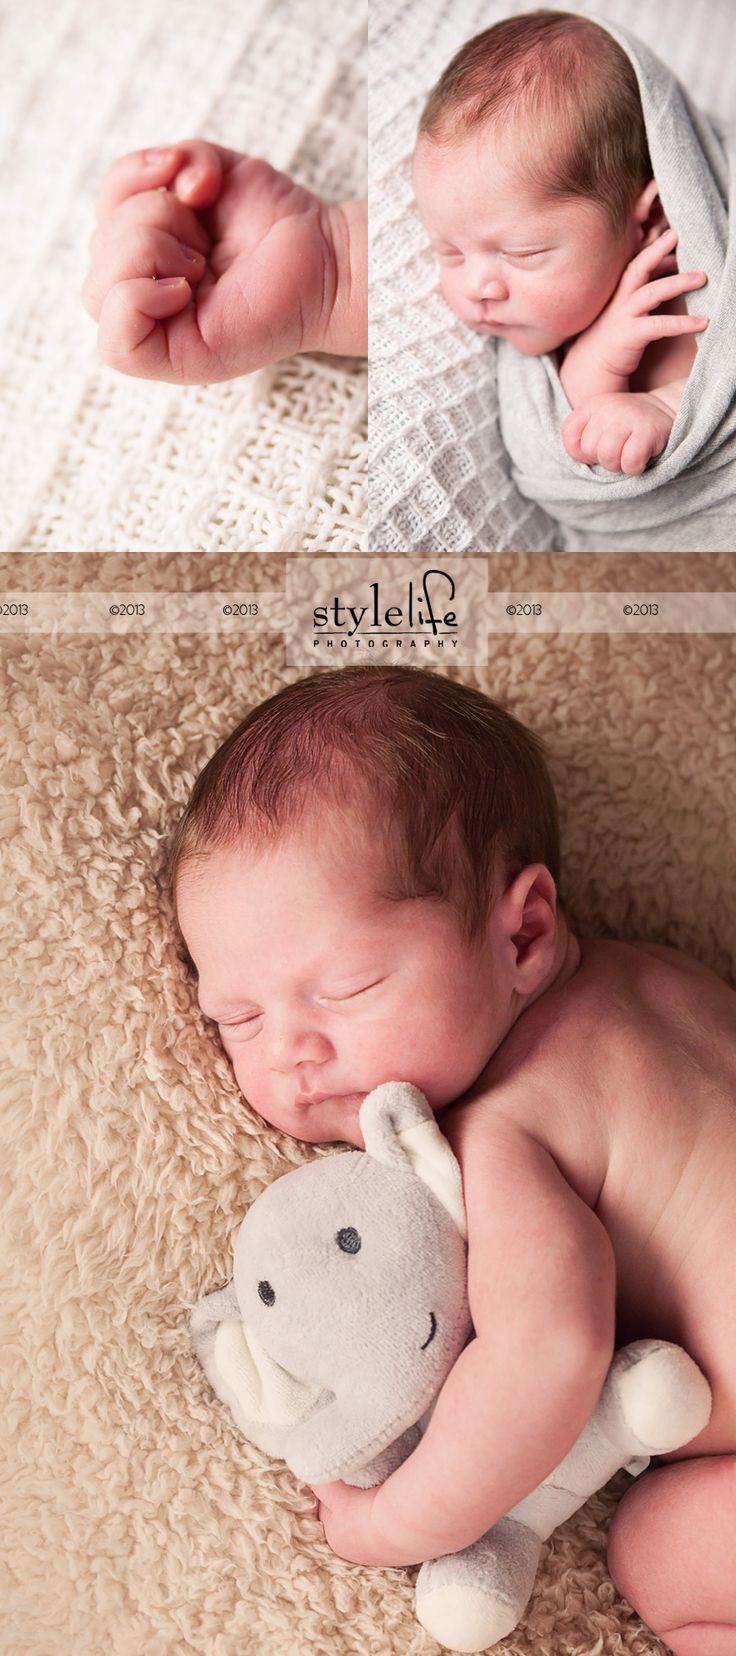 Deion - Newborn Photography | Style Life Photography